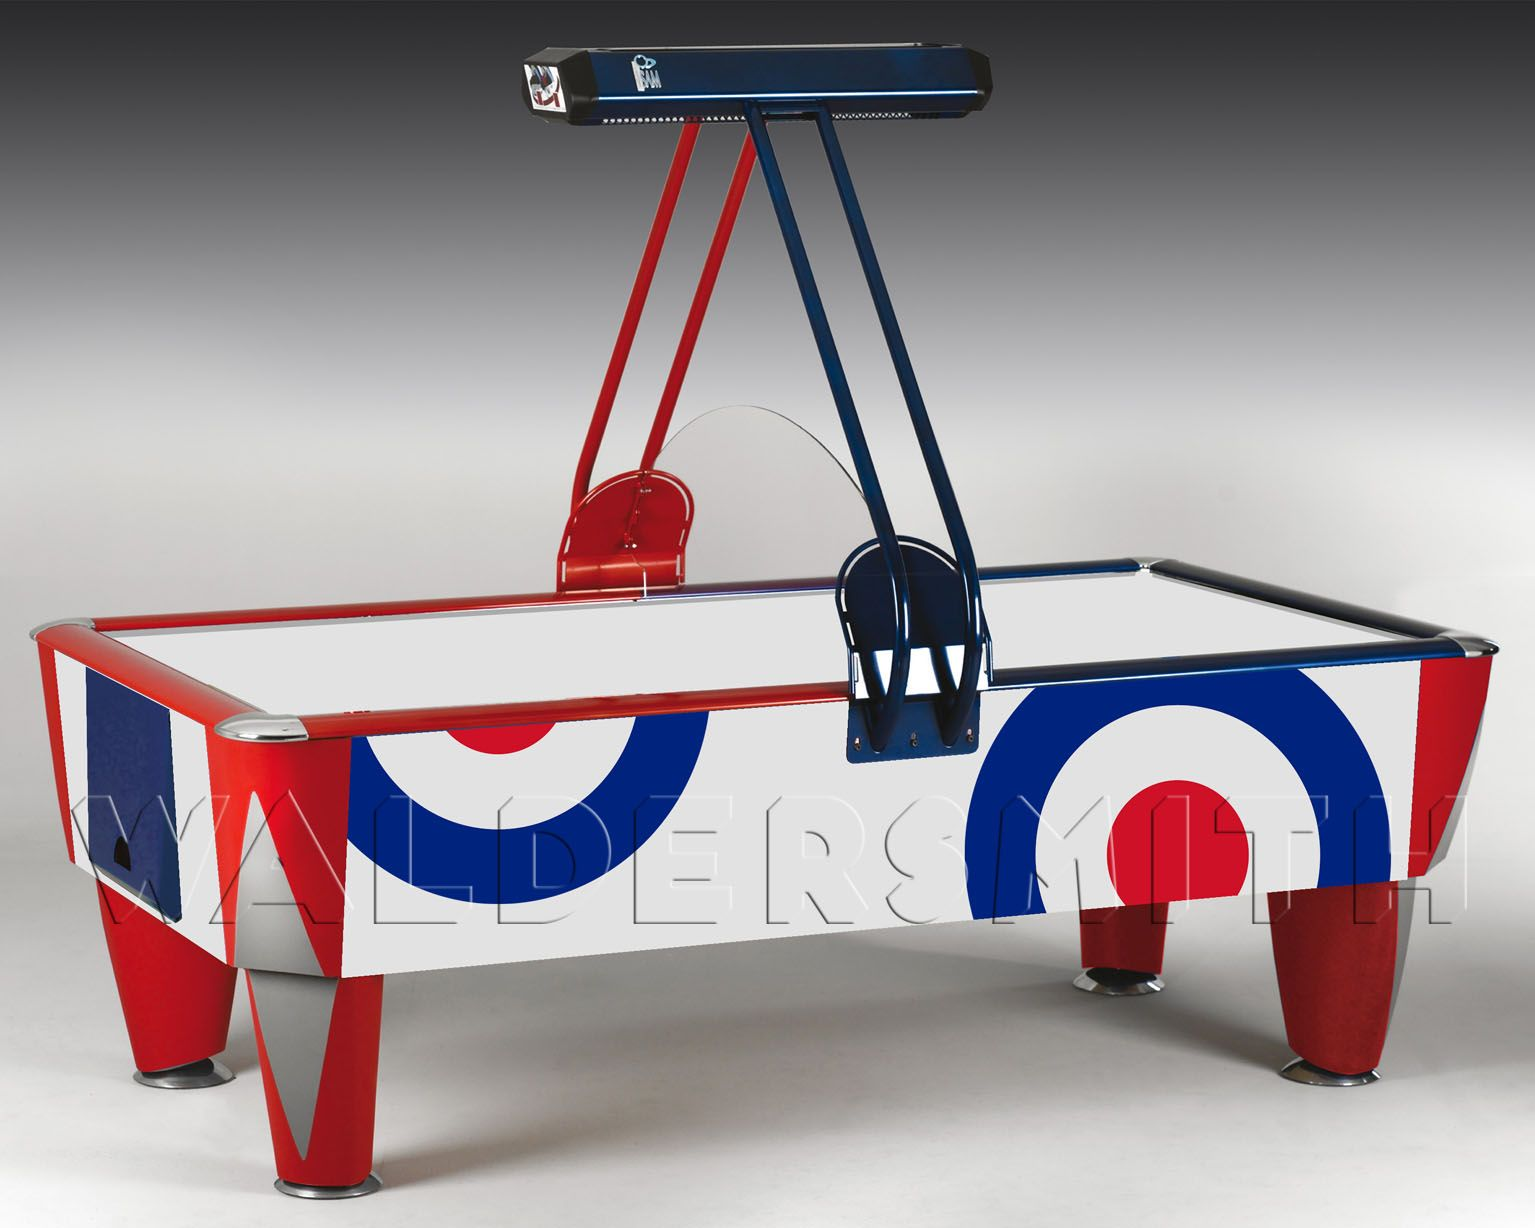 Waldersmith Hurricane Air Hockey Table Storming onto the